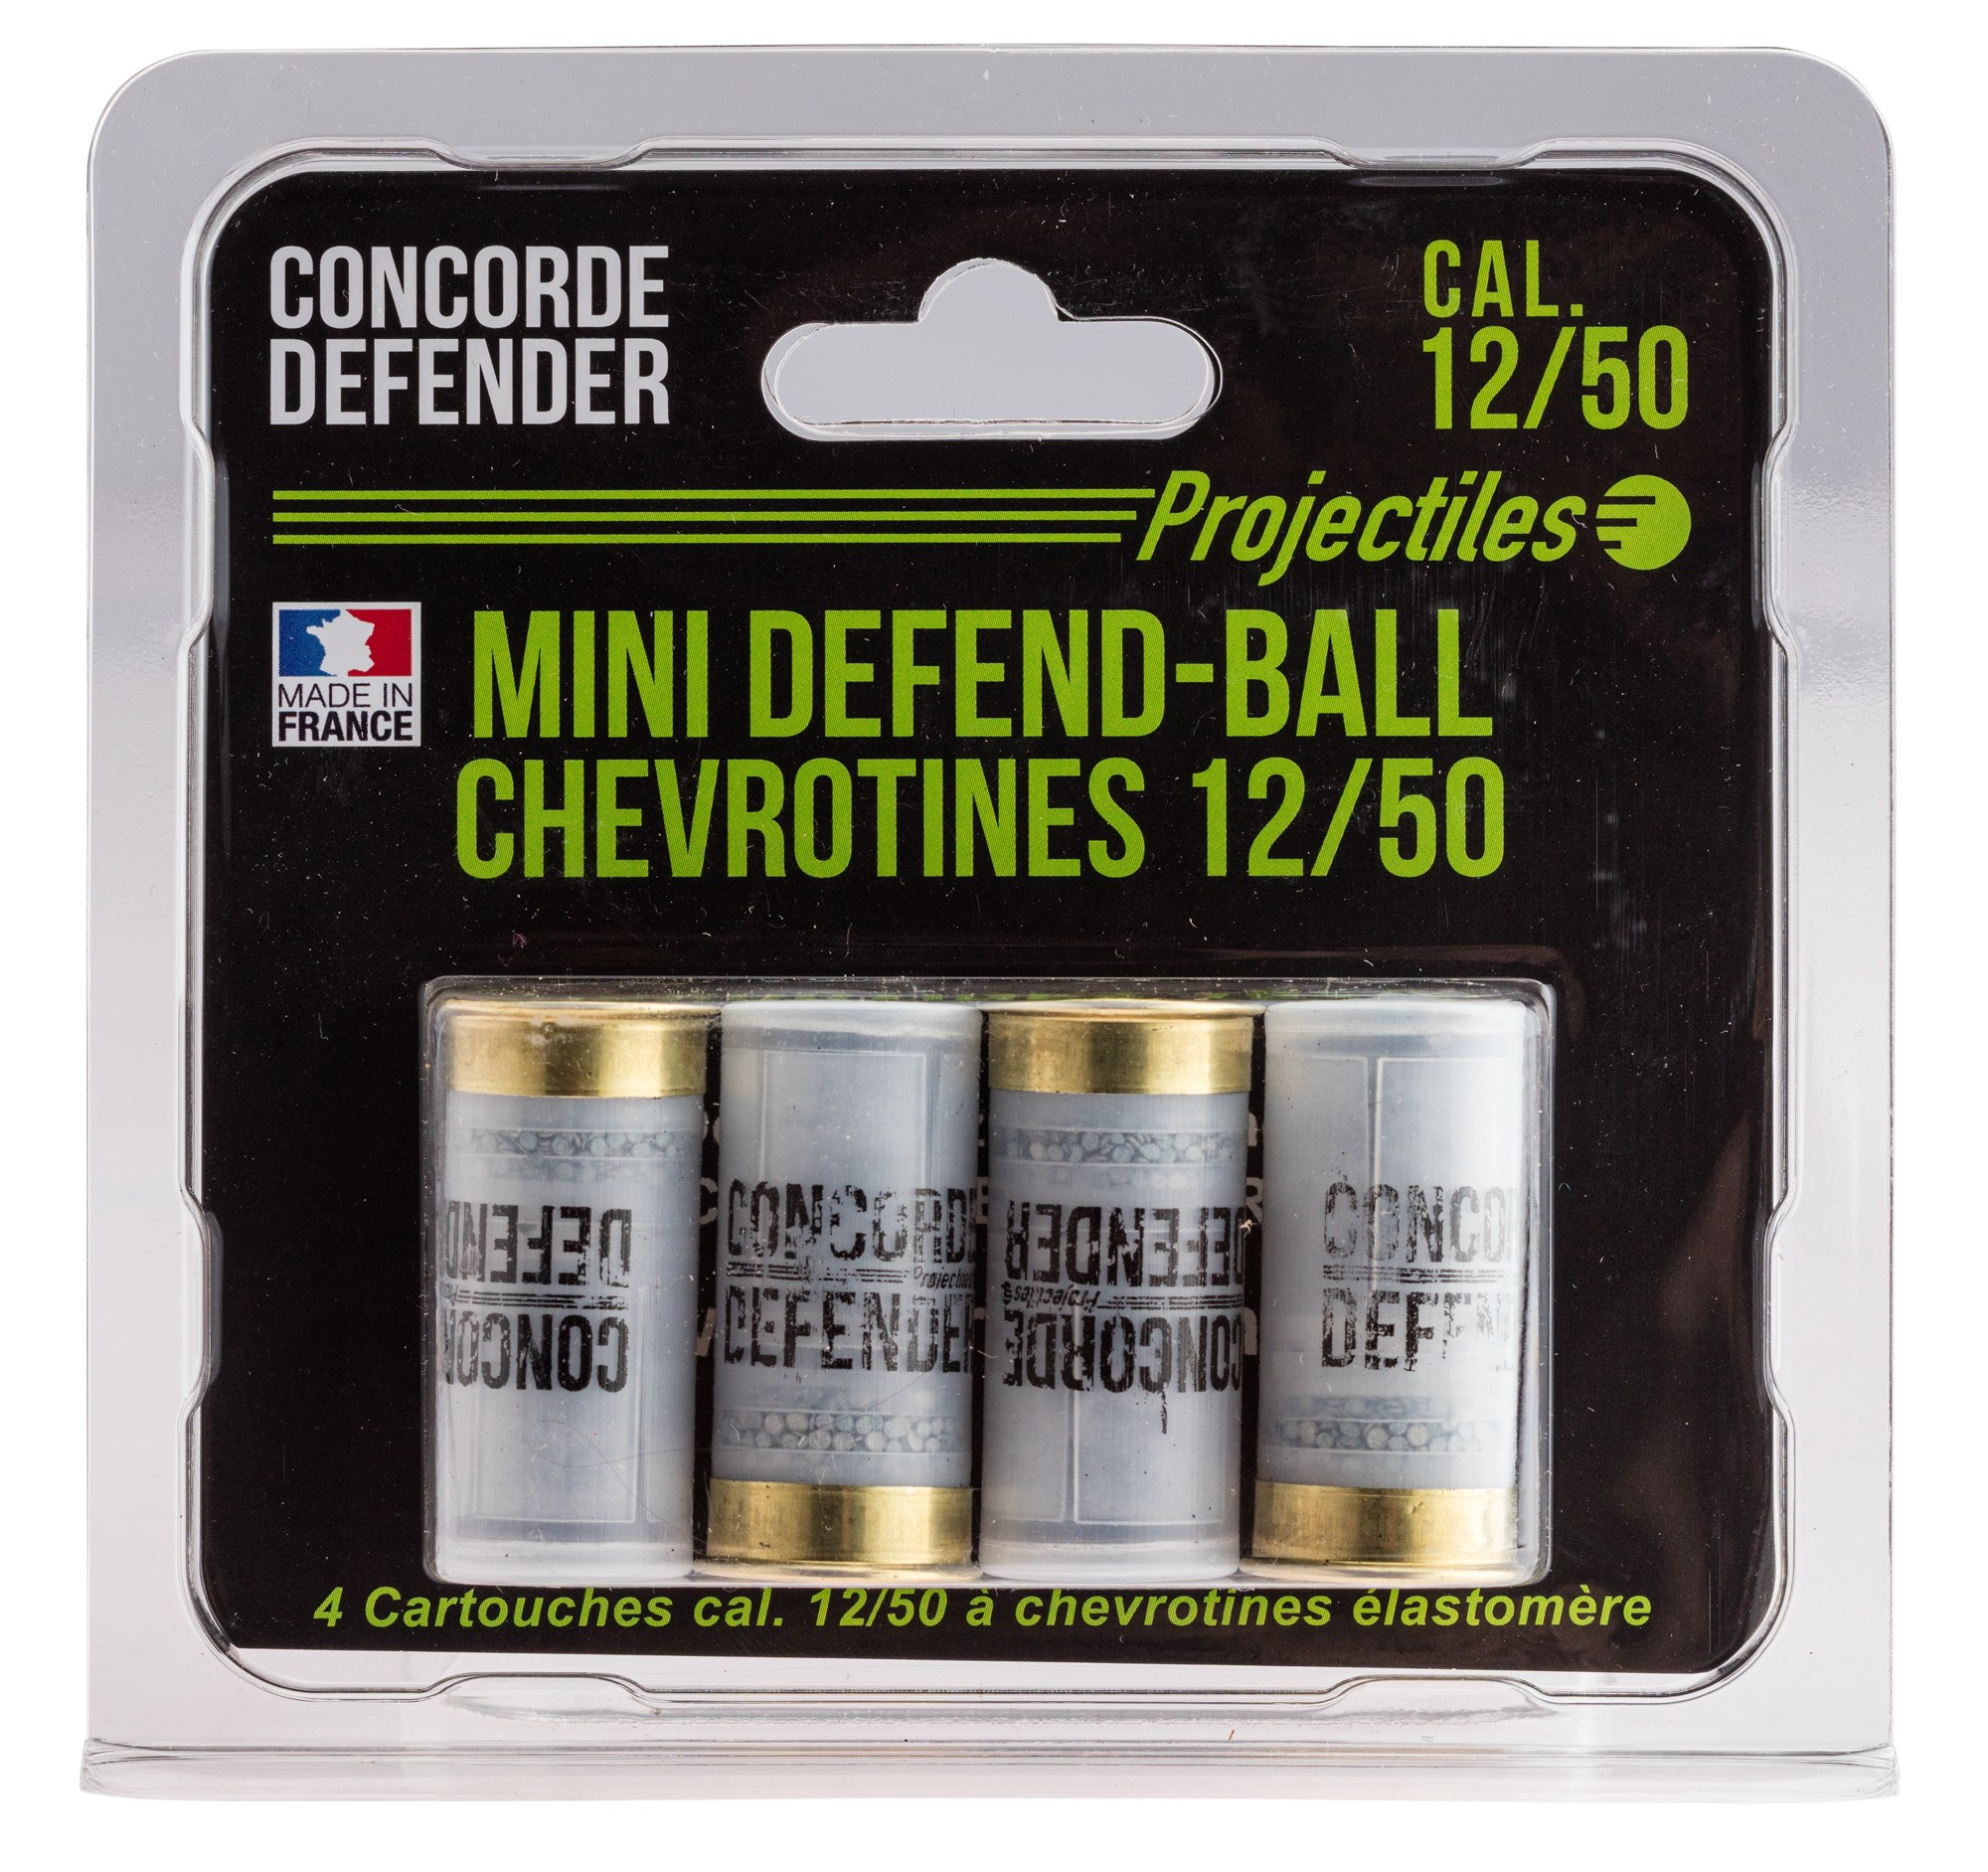 MD0421 4 cartouches Mini Defend-Ball cal. 12/50 chevrotine Elastomere - MD0421